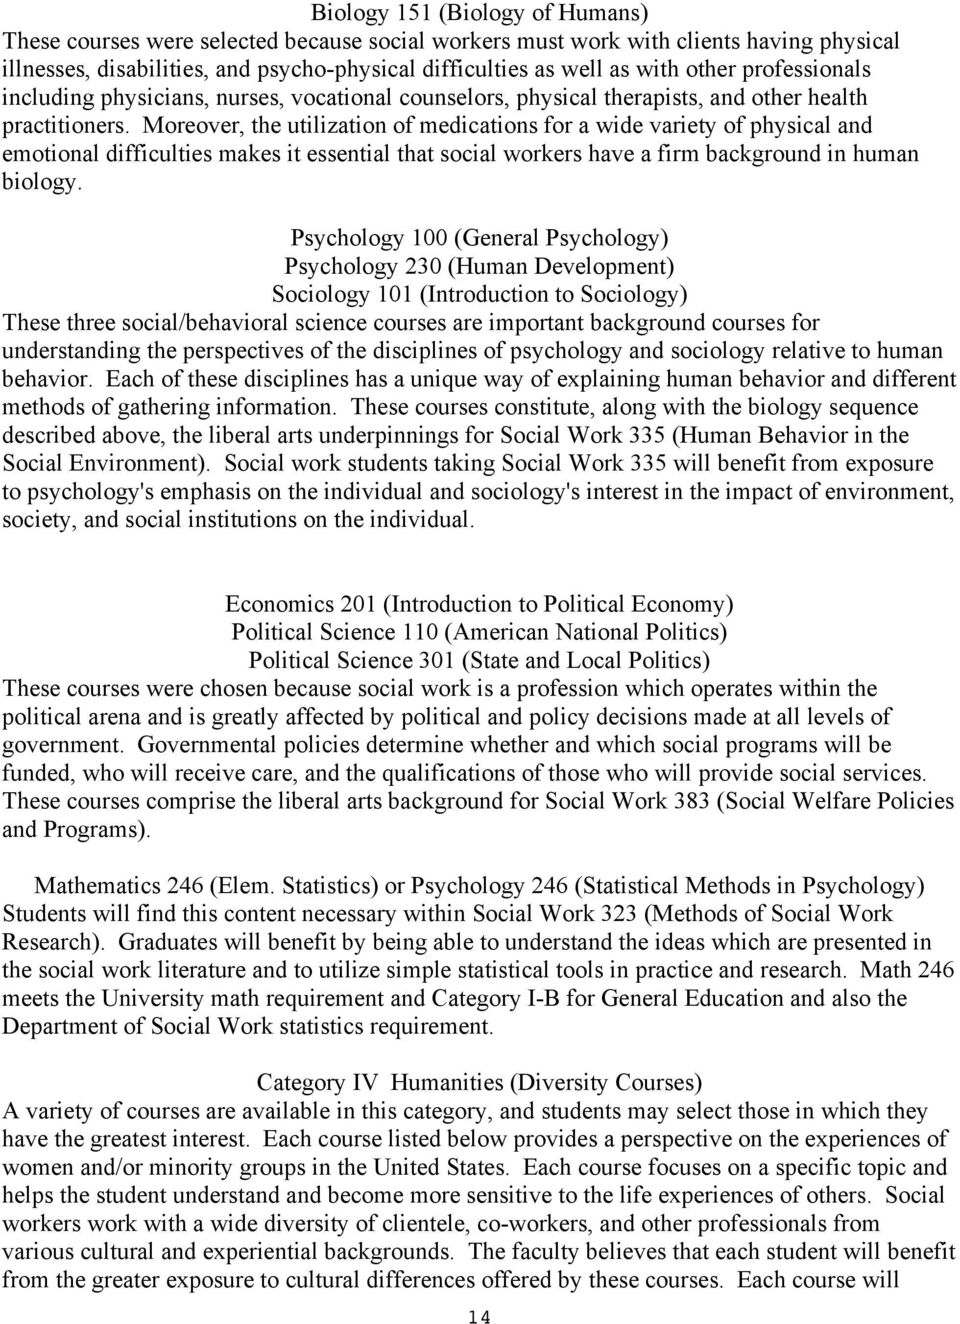 Moreover, the utilization of medications for a wide variety of physical and emotional difficulties makes it essential that social workers have a firm background in human biology.